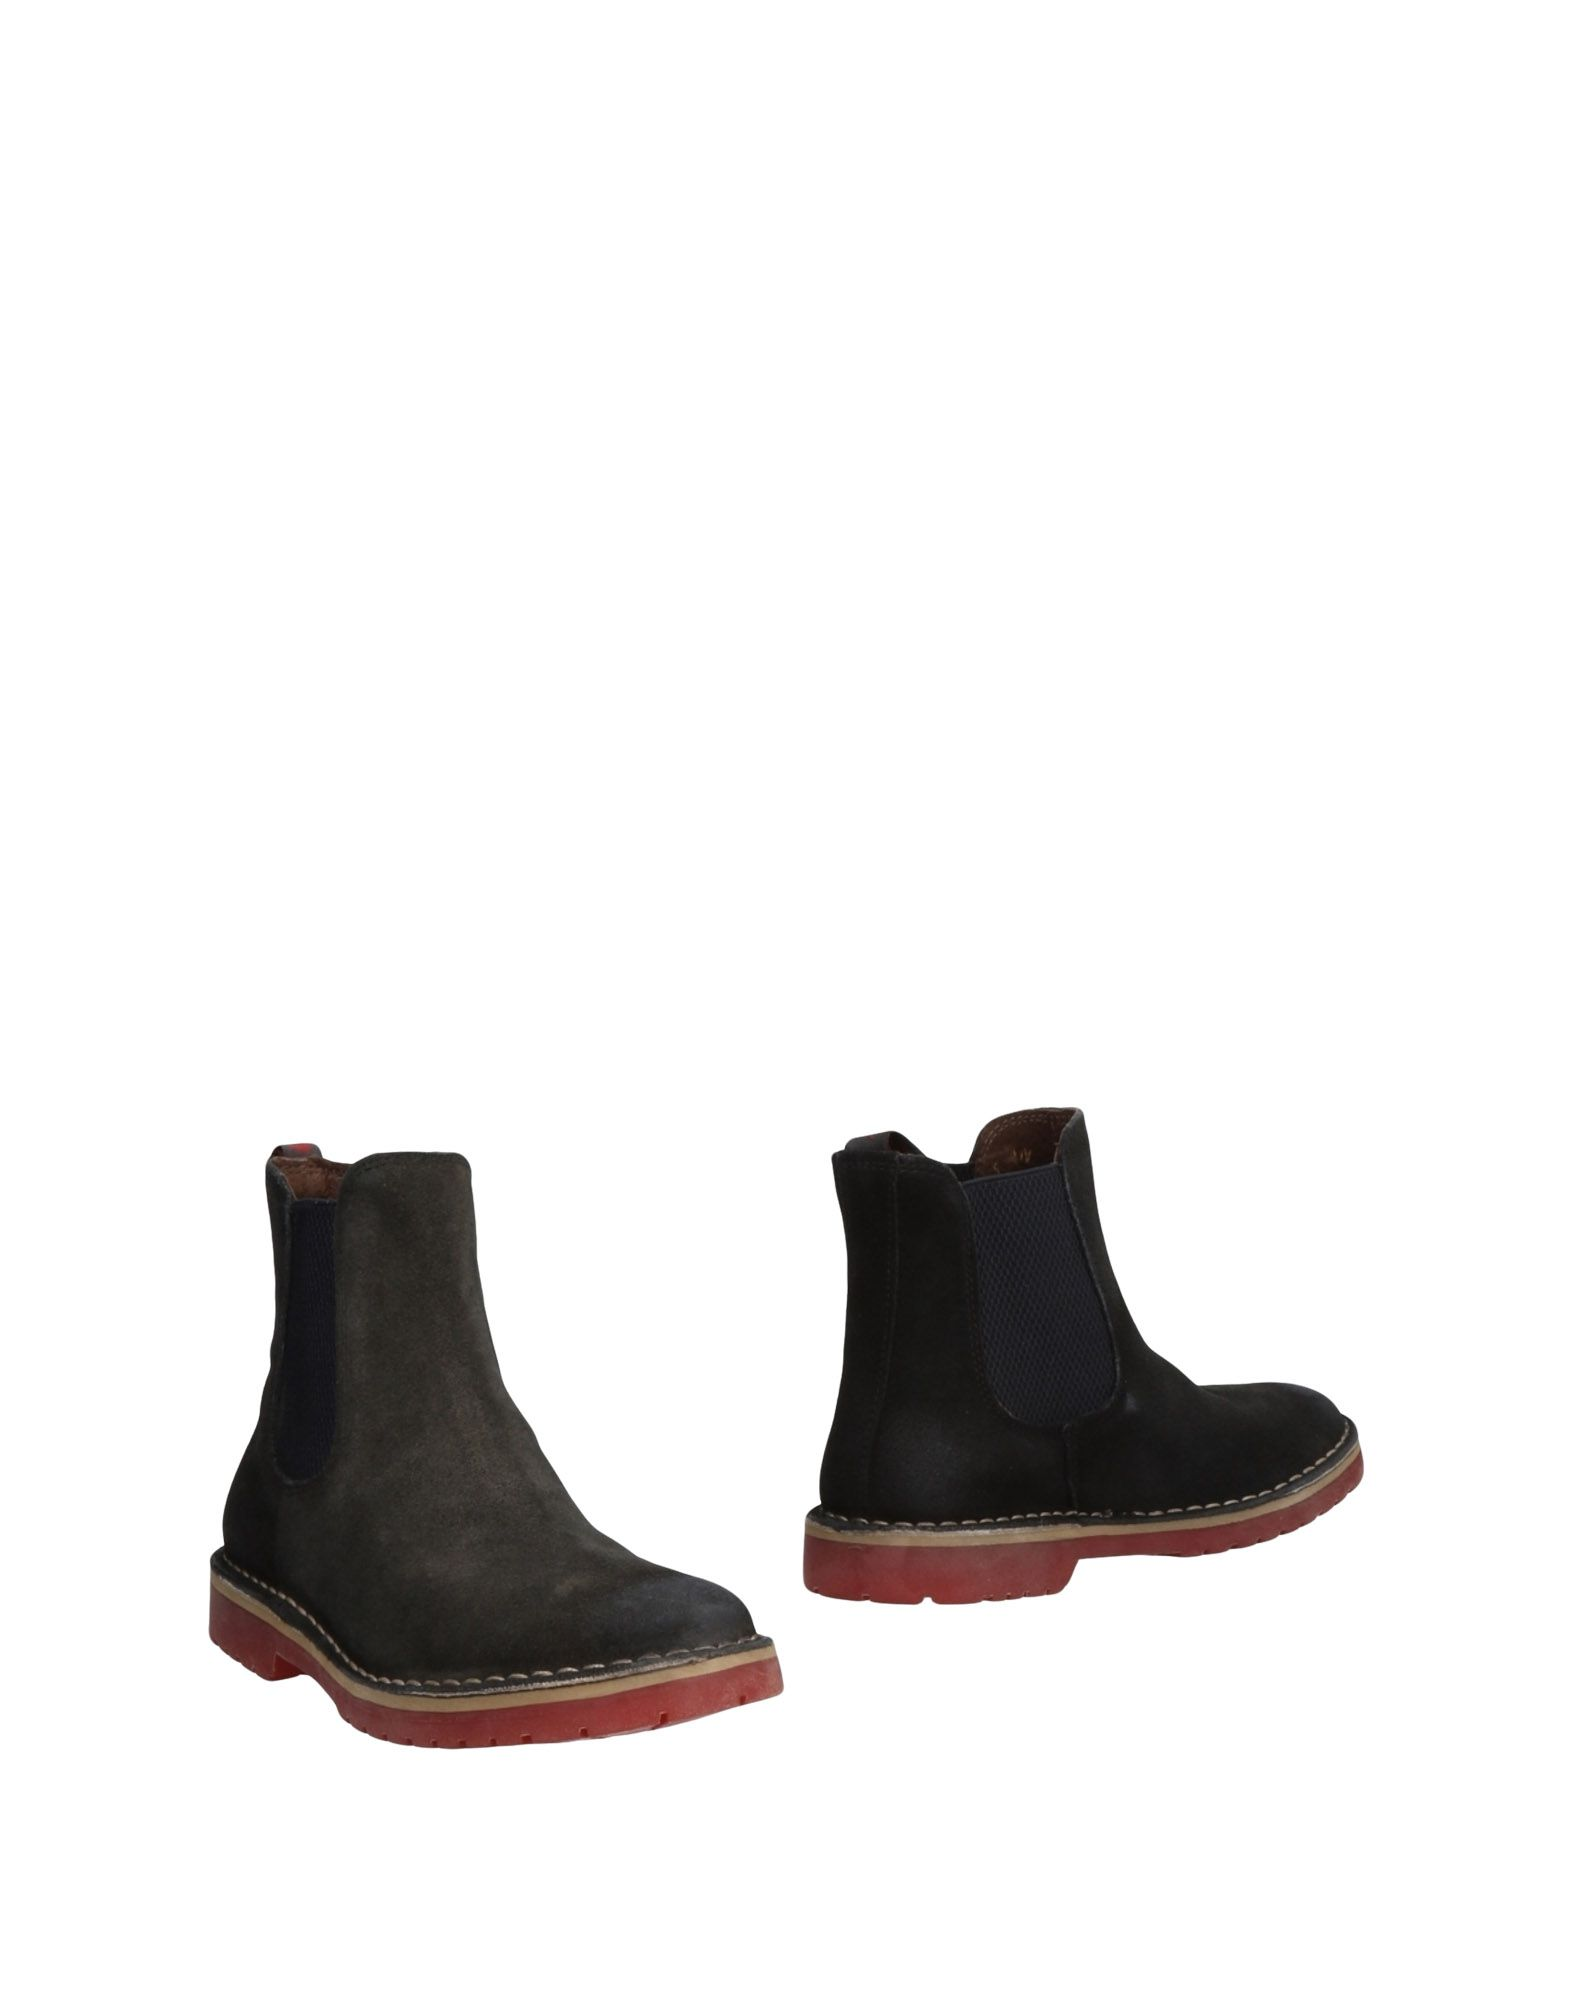 Chelsea Boots Wally Walker Donna - 11467923WD